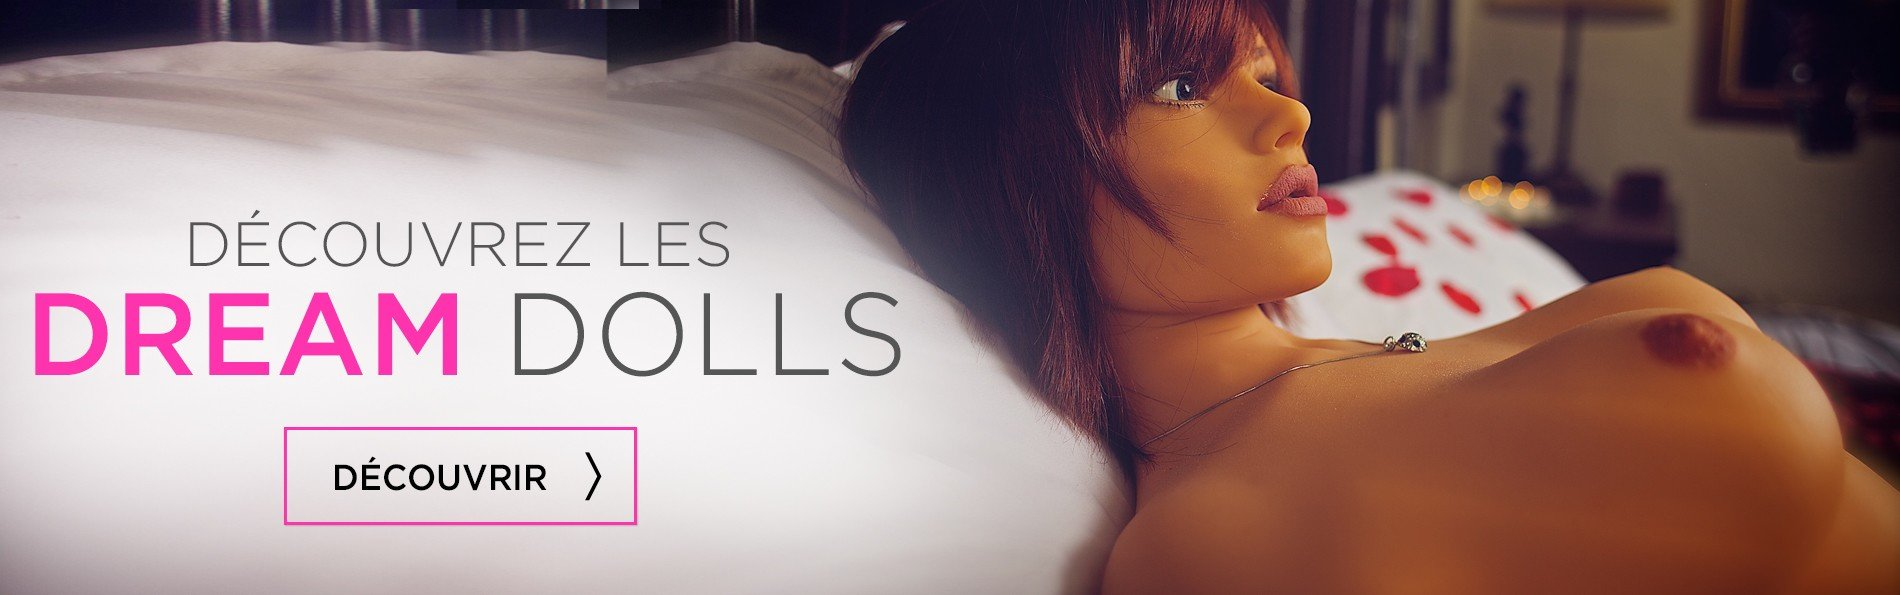 SLIDES-DREAM-DOLLS-2